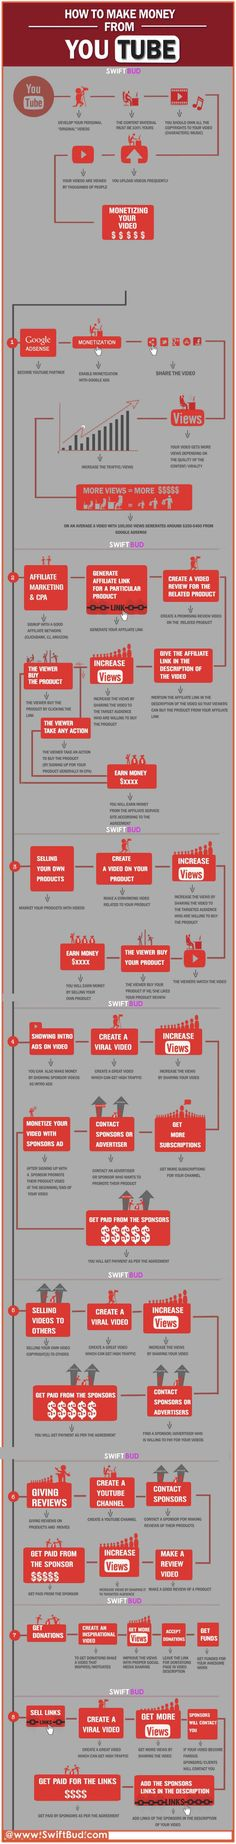 Copy Paste Earn Money - How to Make Money Online Using YouTube [Infographic] | Visual.ly - You're copy pasting anyway...Get paid for it.